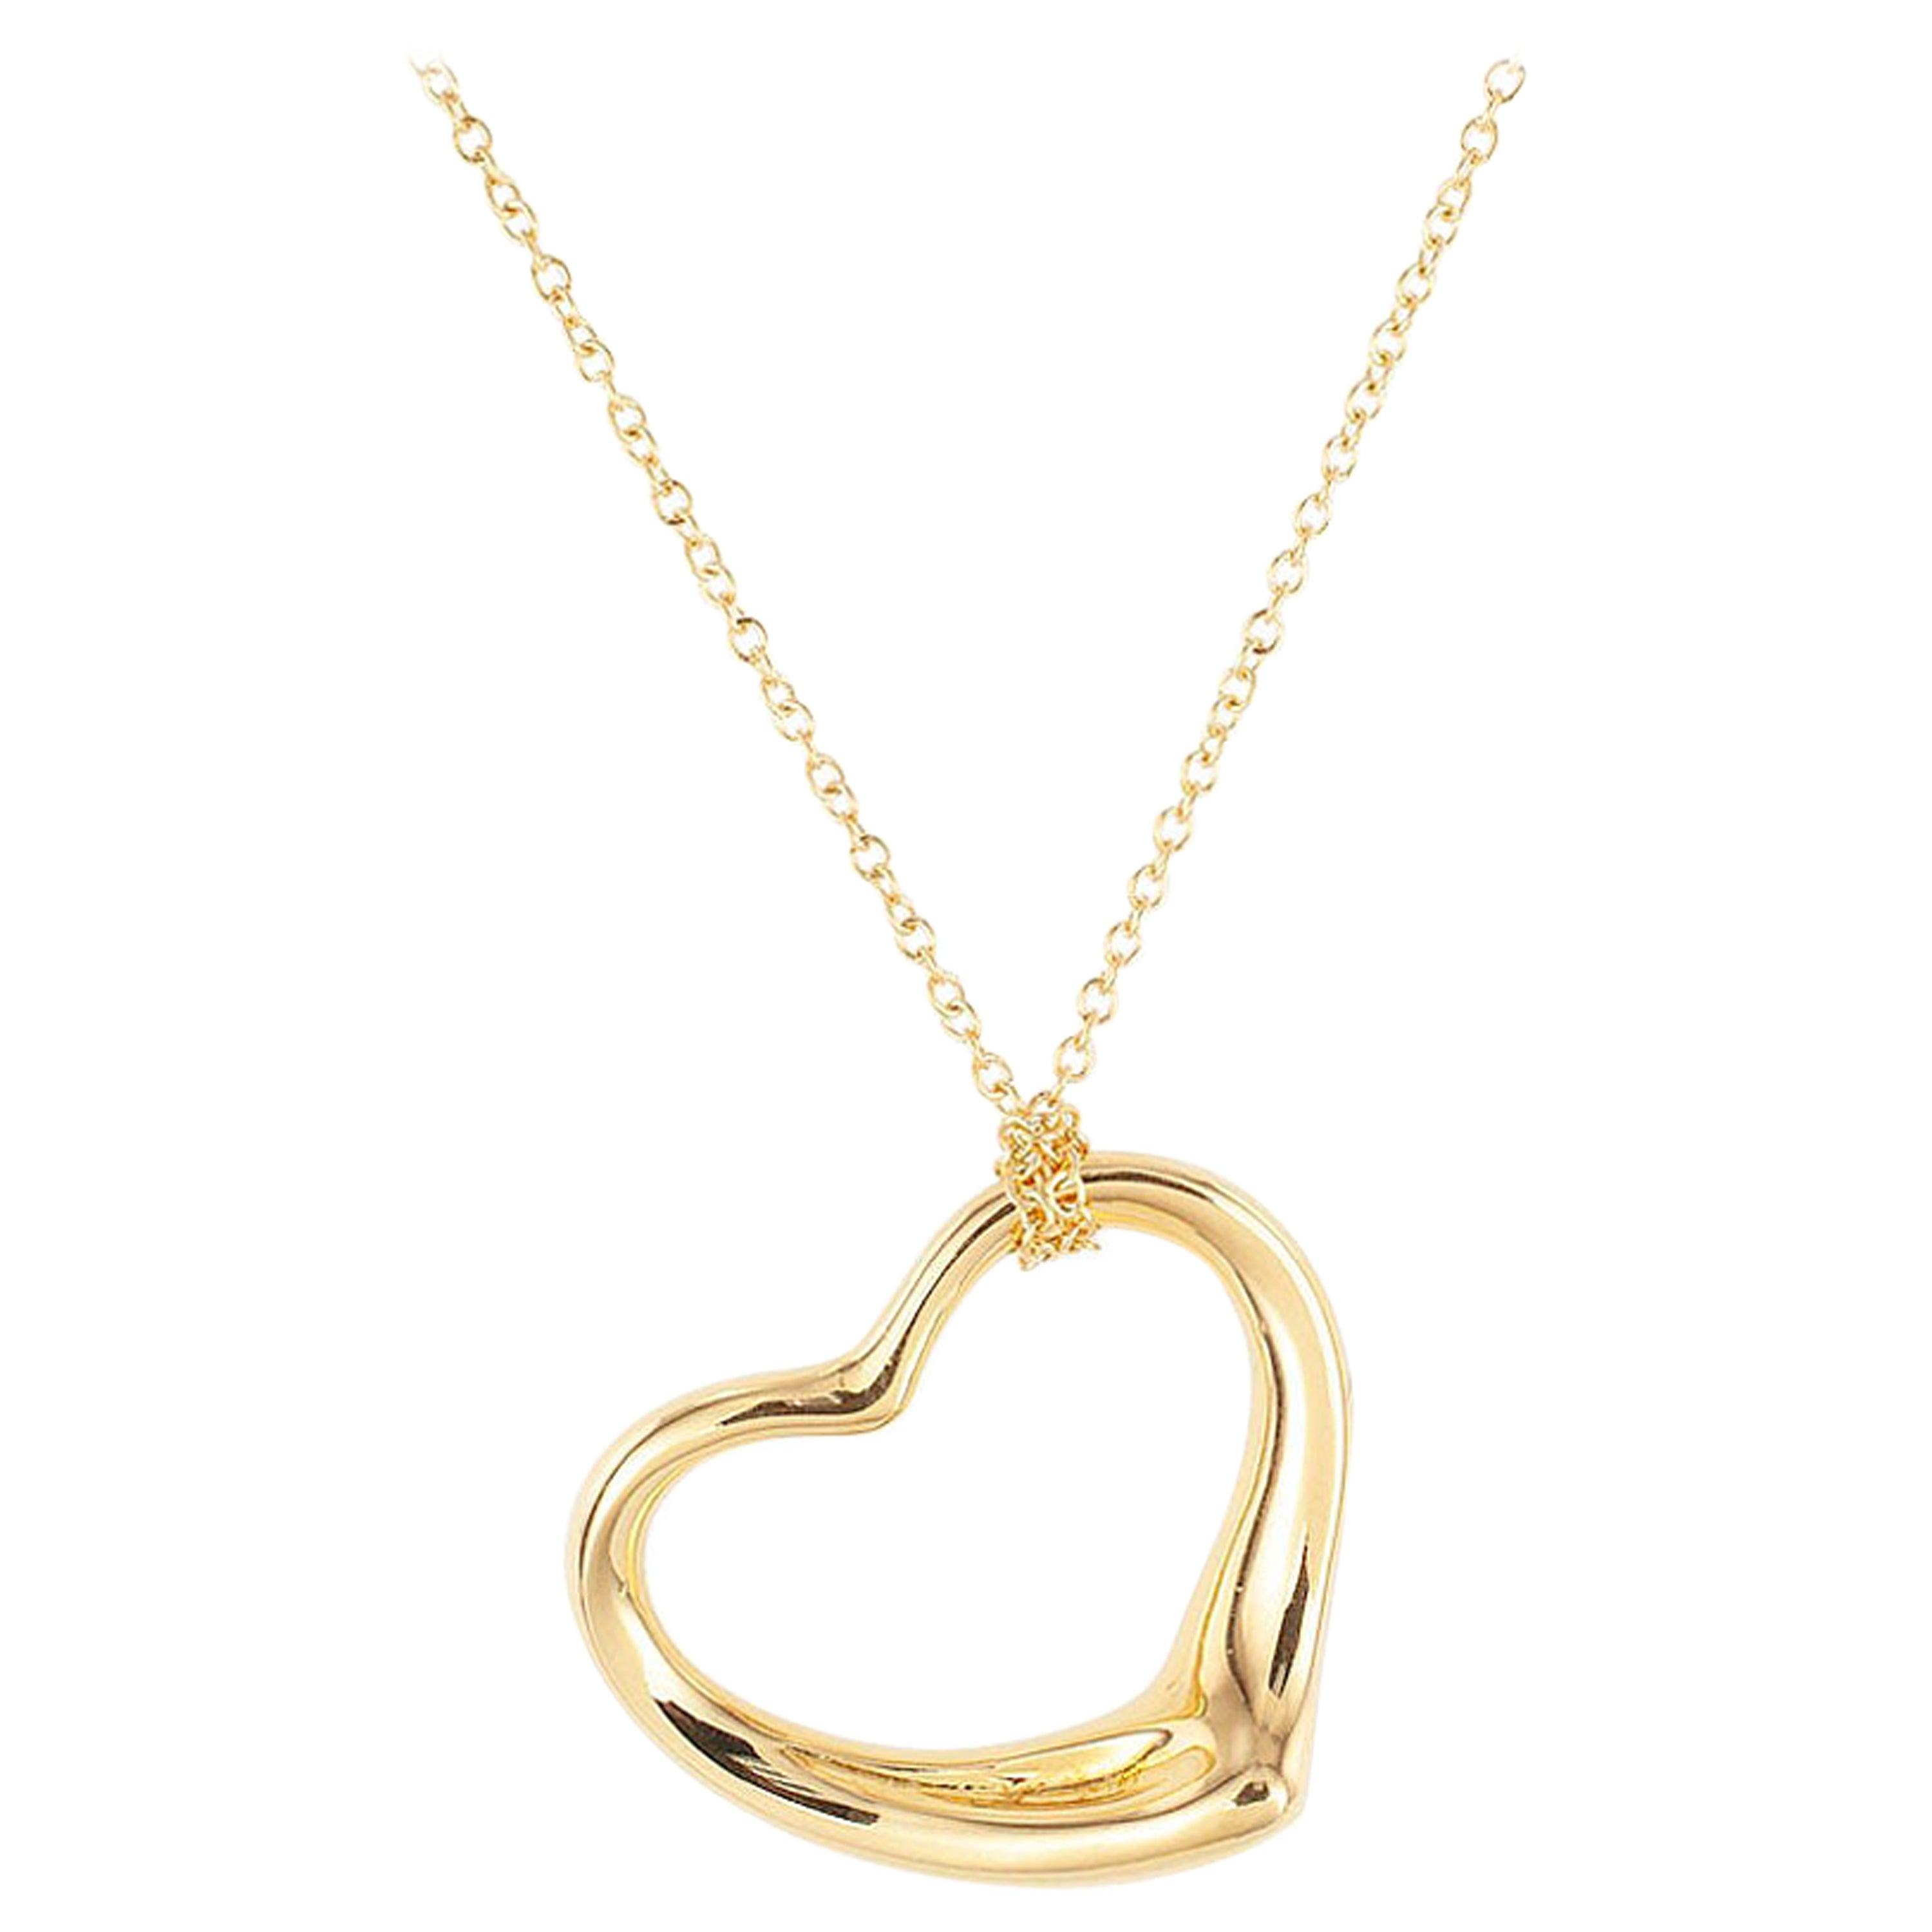 Tiffany & Co. Elsa Peretti Heart Shaped Yellow Gold Pendant